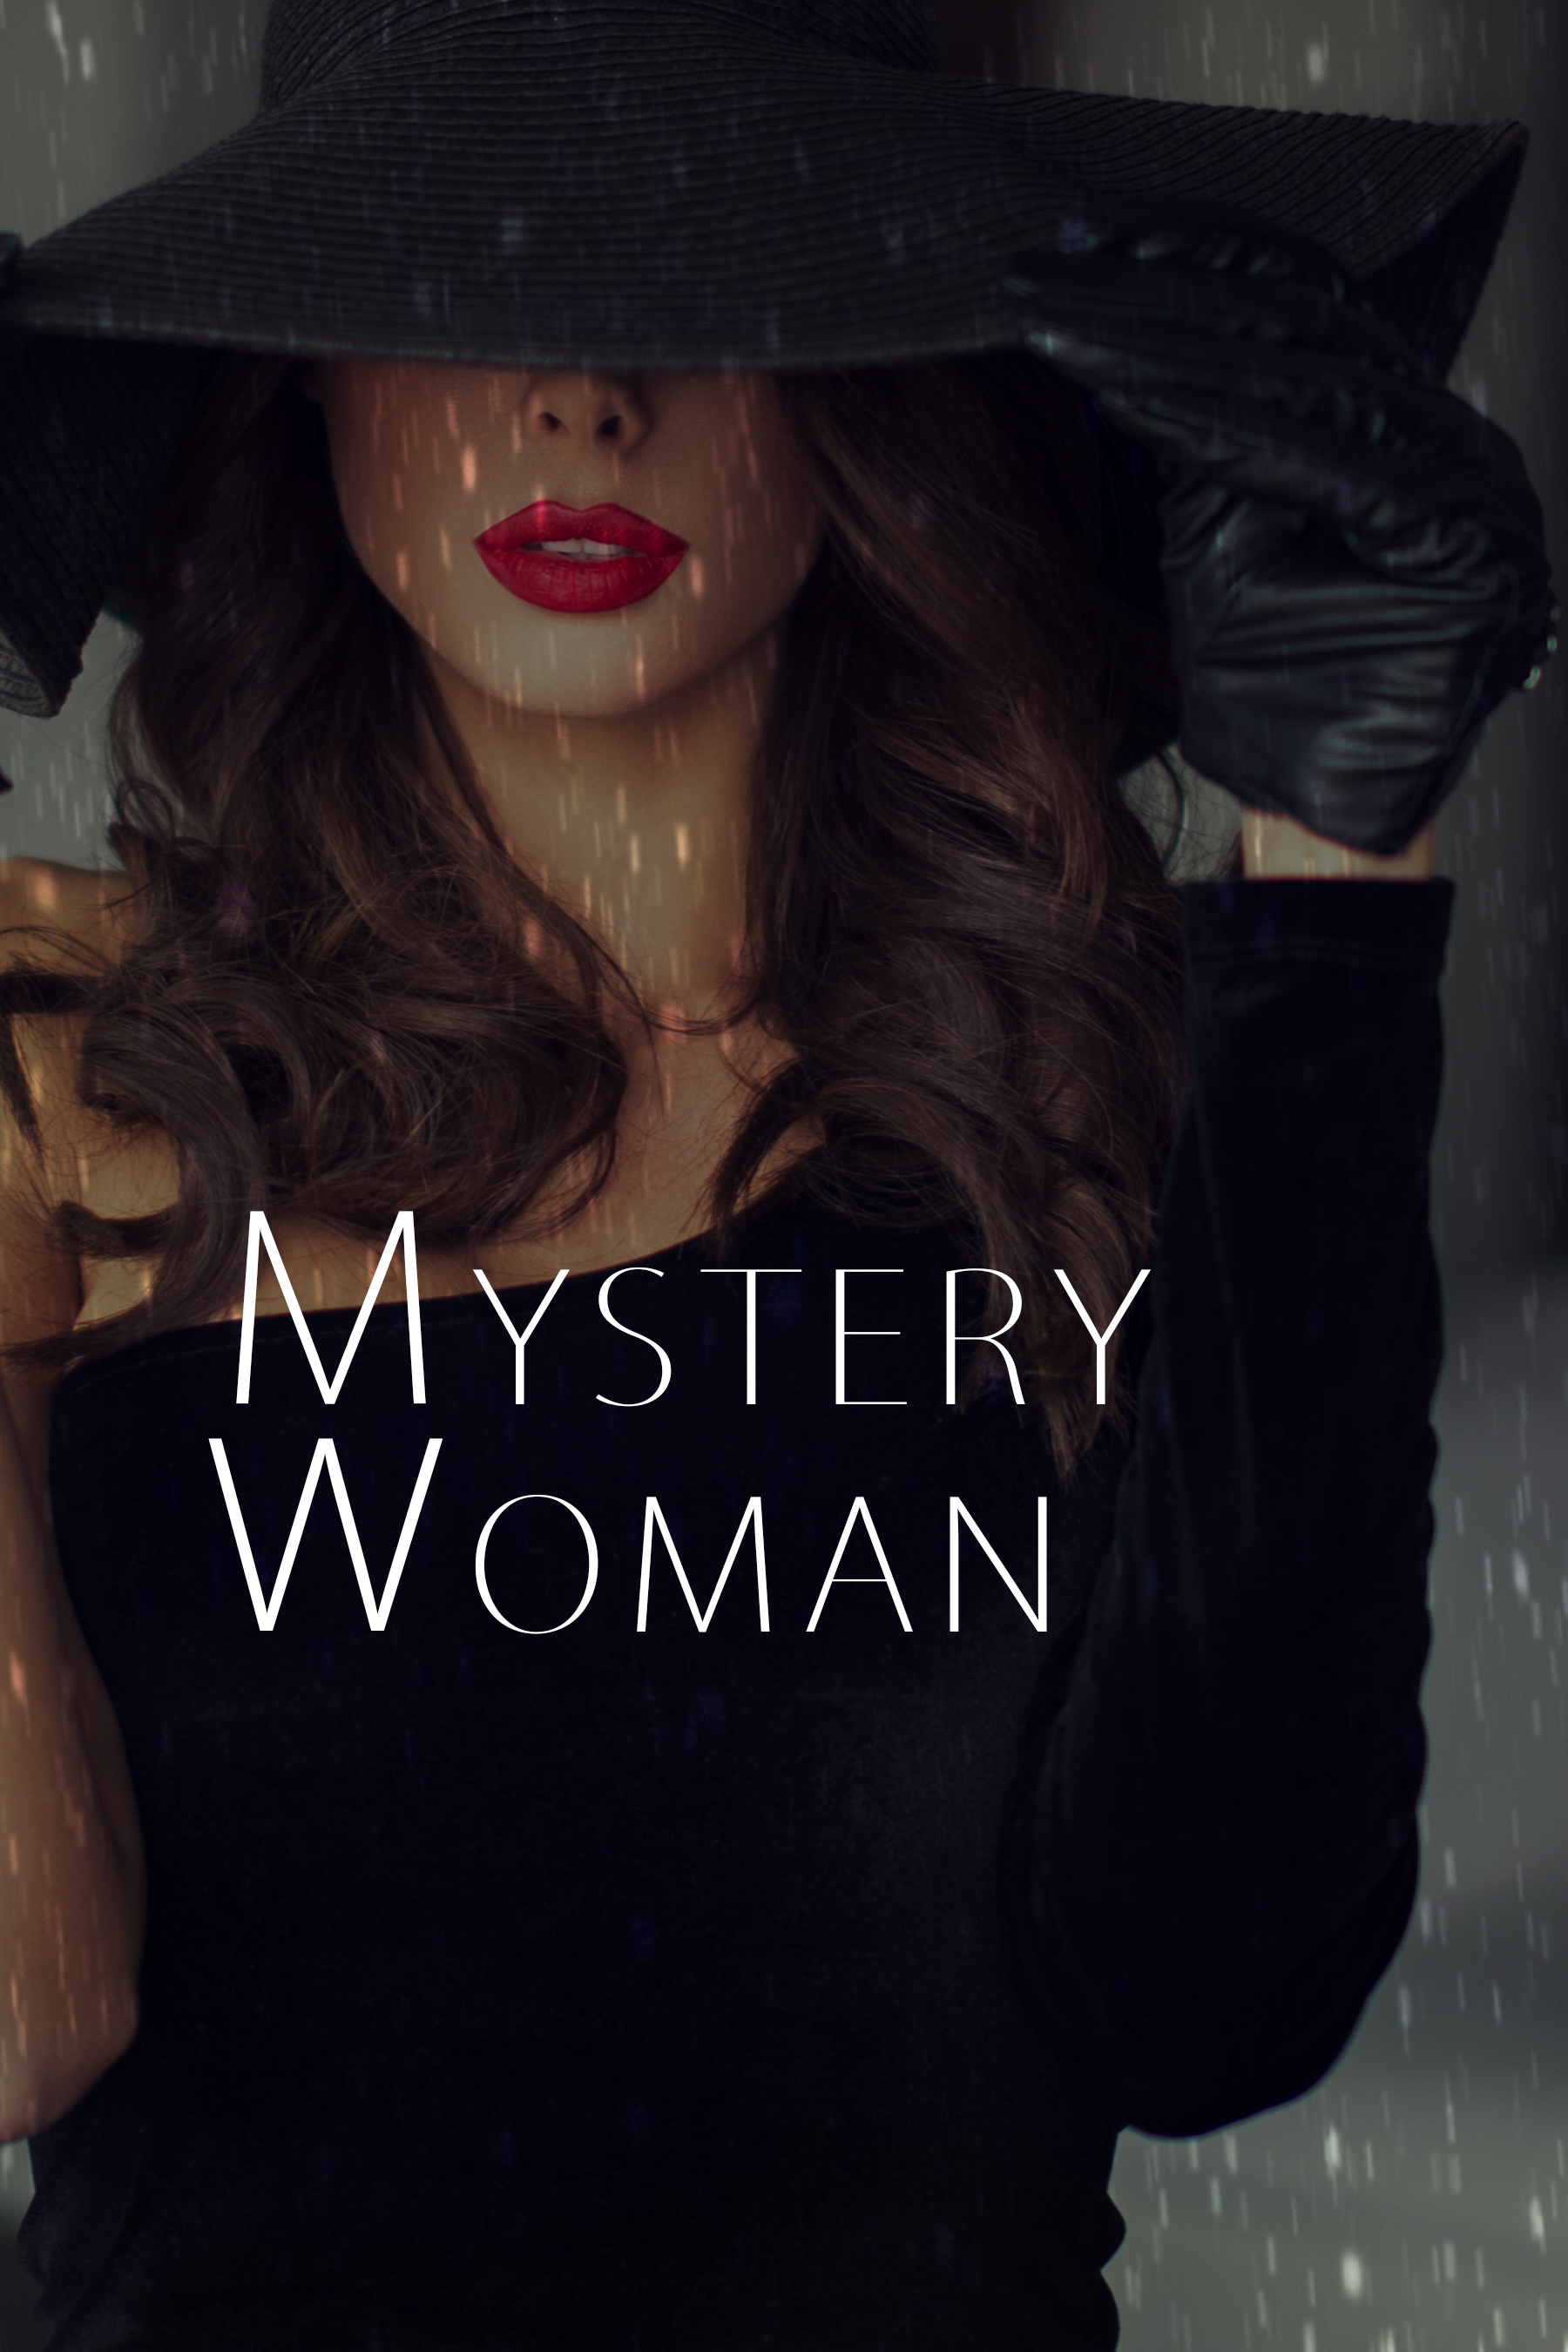 Mystery woman: what is she 34